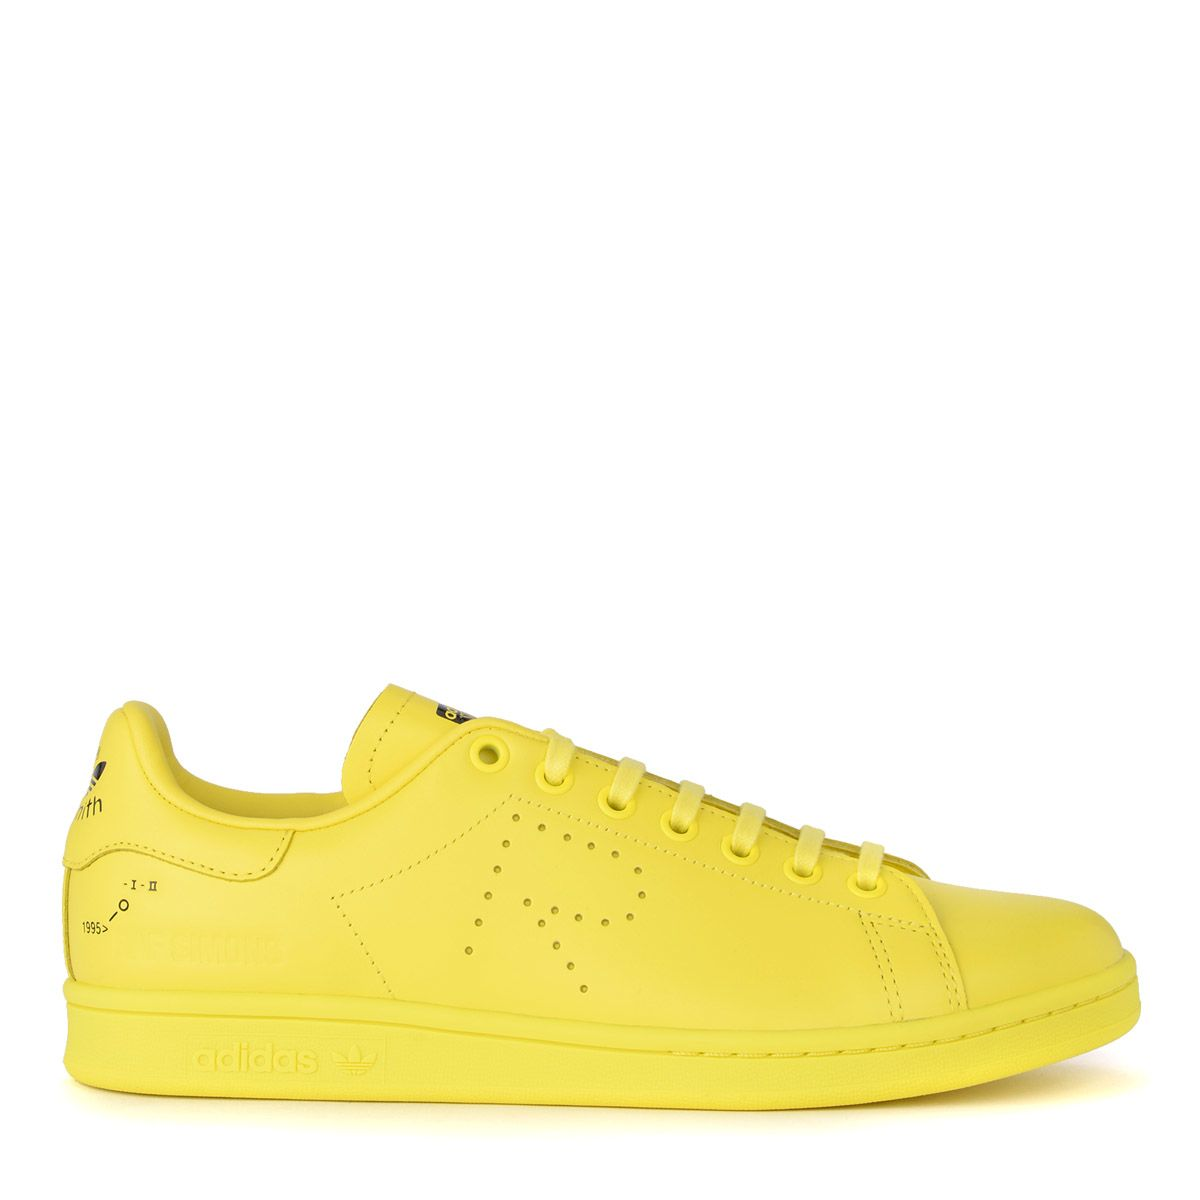 uk availability 581aa 4c13b Raf Simons Sneaker Adidas By Stan Smith In Pelle Gialla In Giallo